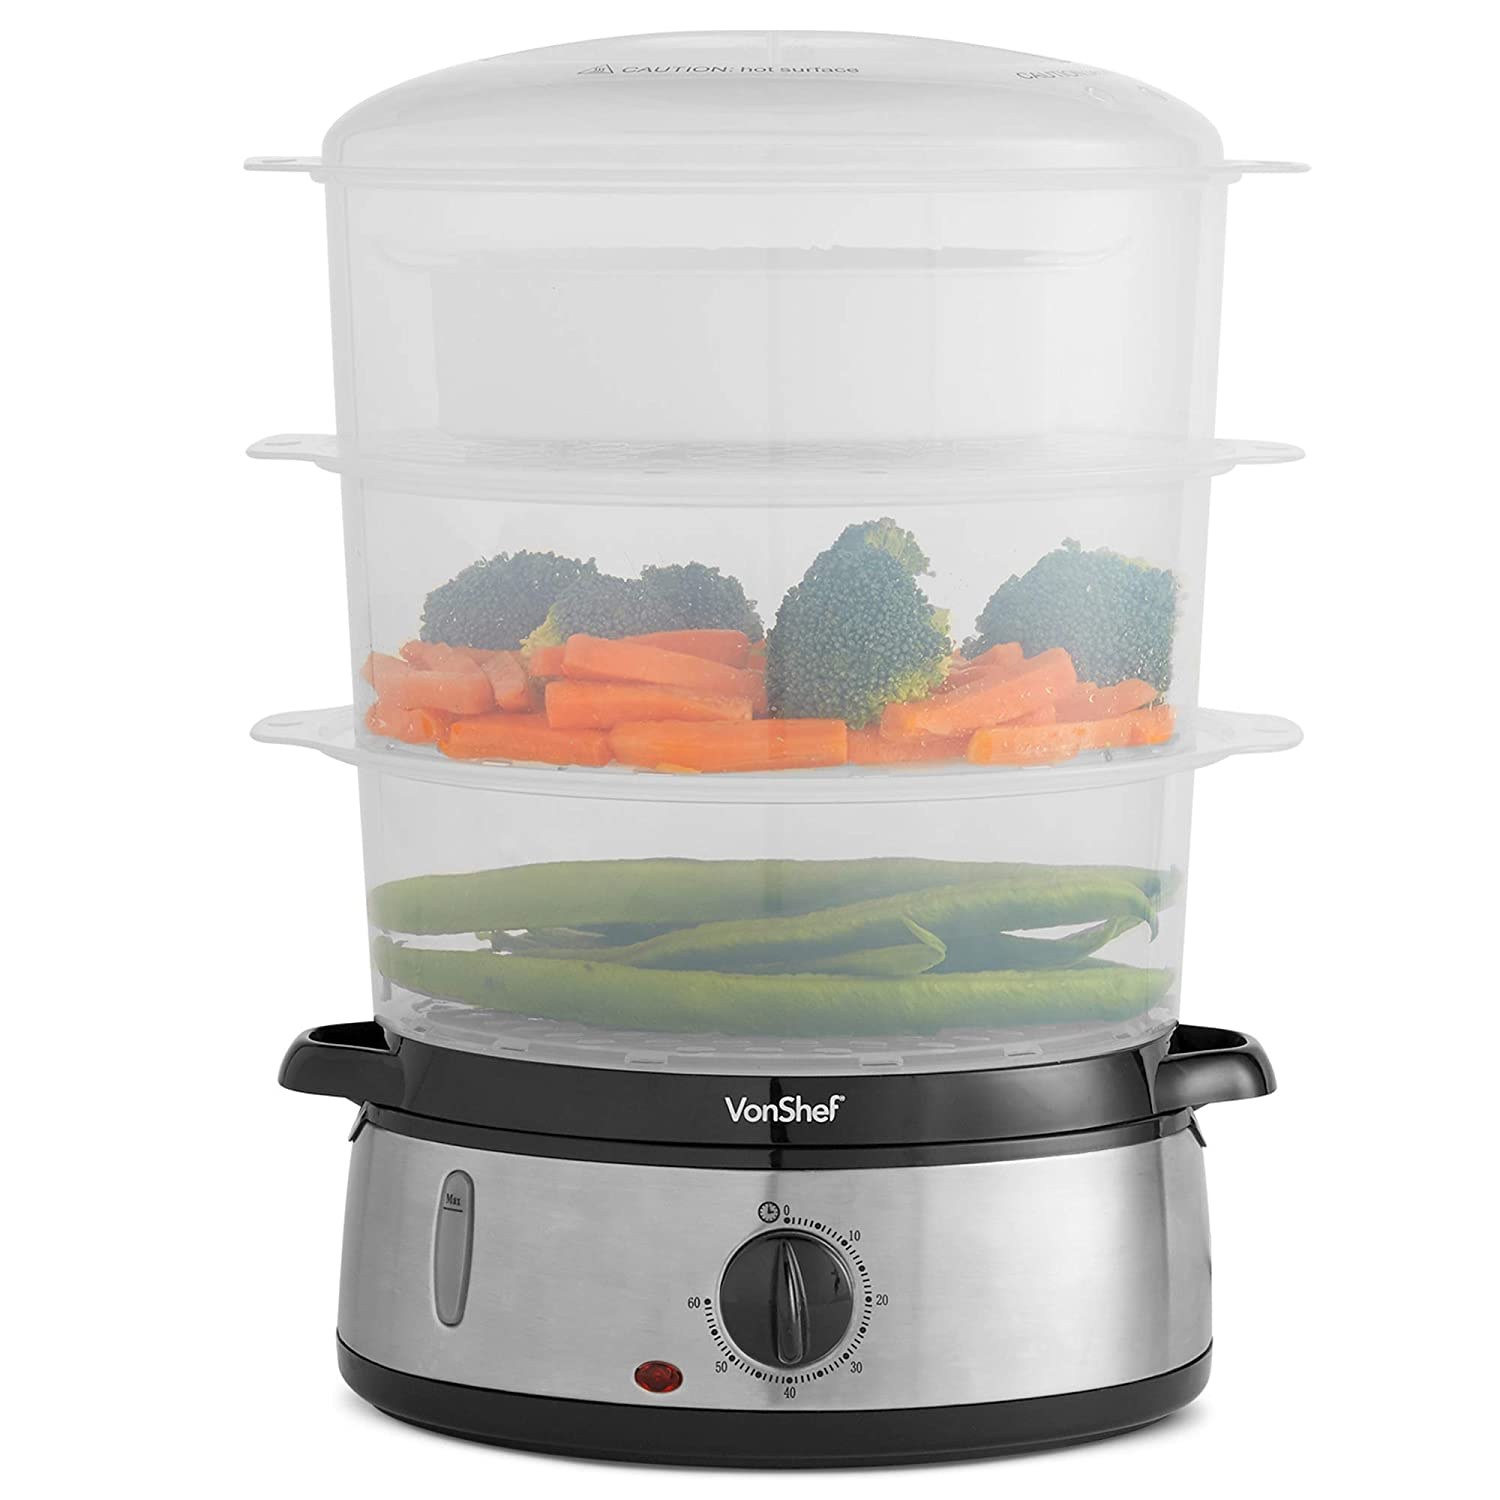 VonShef Food Steamer with 3 Removable Tiers, 60 Minute Timer & Rice Bowl Included - Electric - 800W